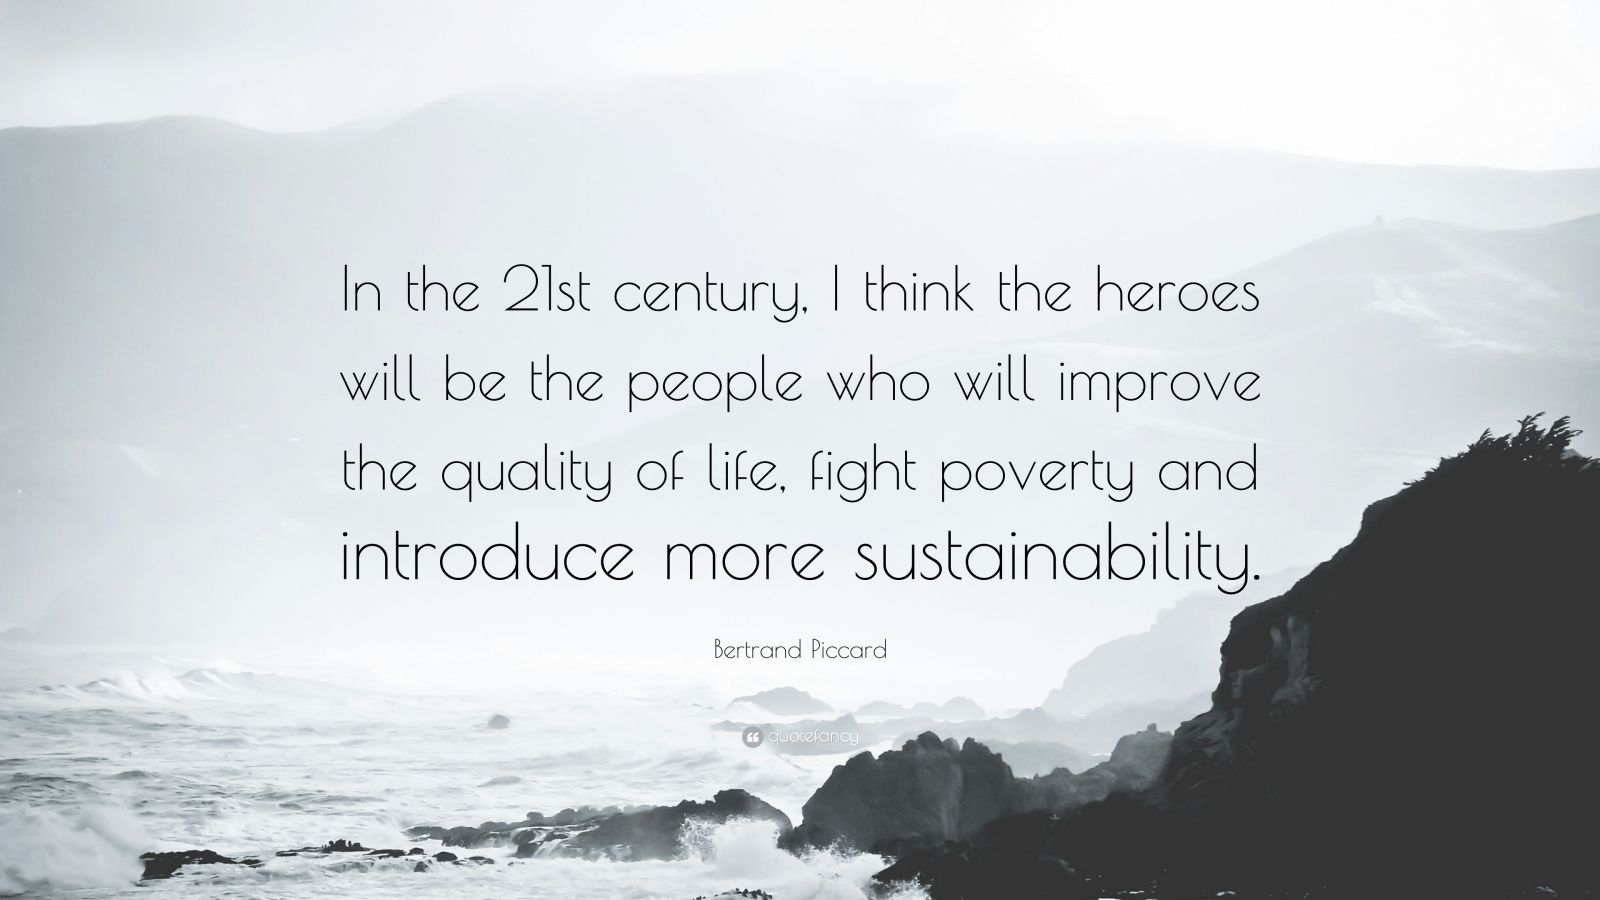 Heroes in the 21st century essay